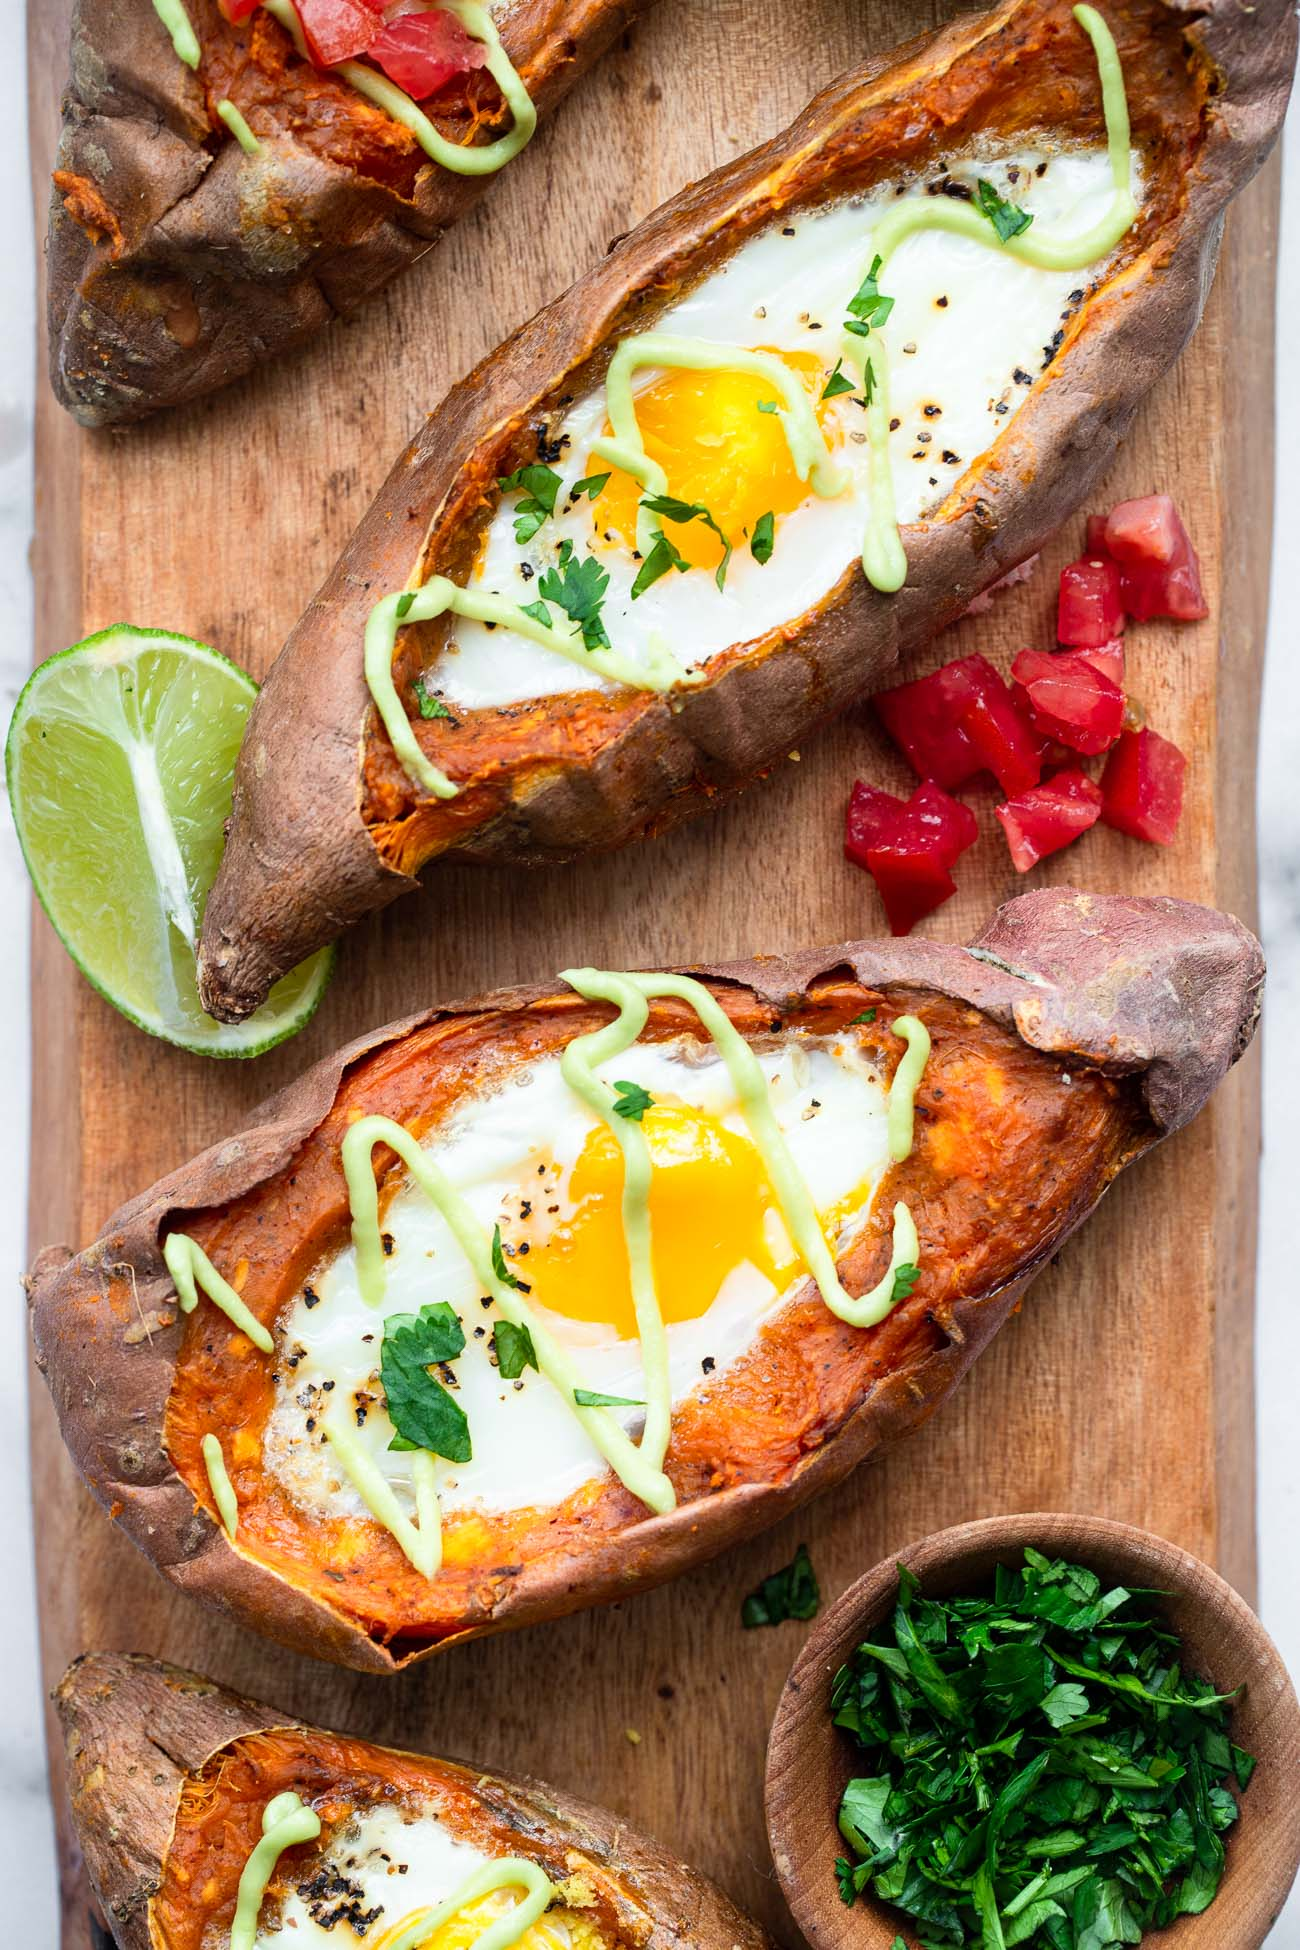 Twice baked mexican sweet potatoes pic